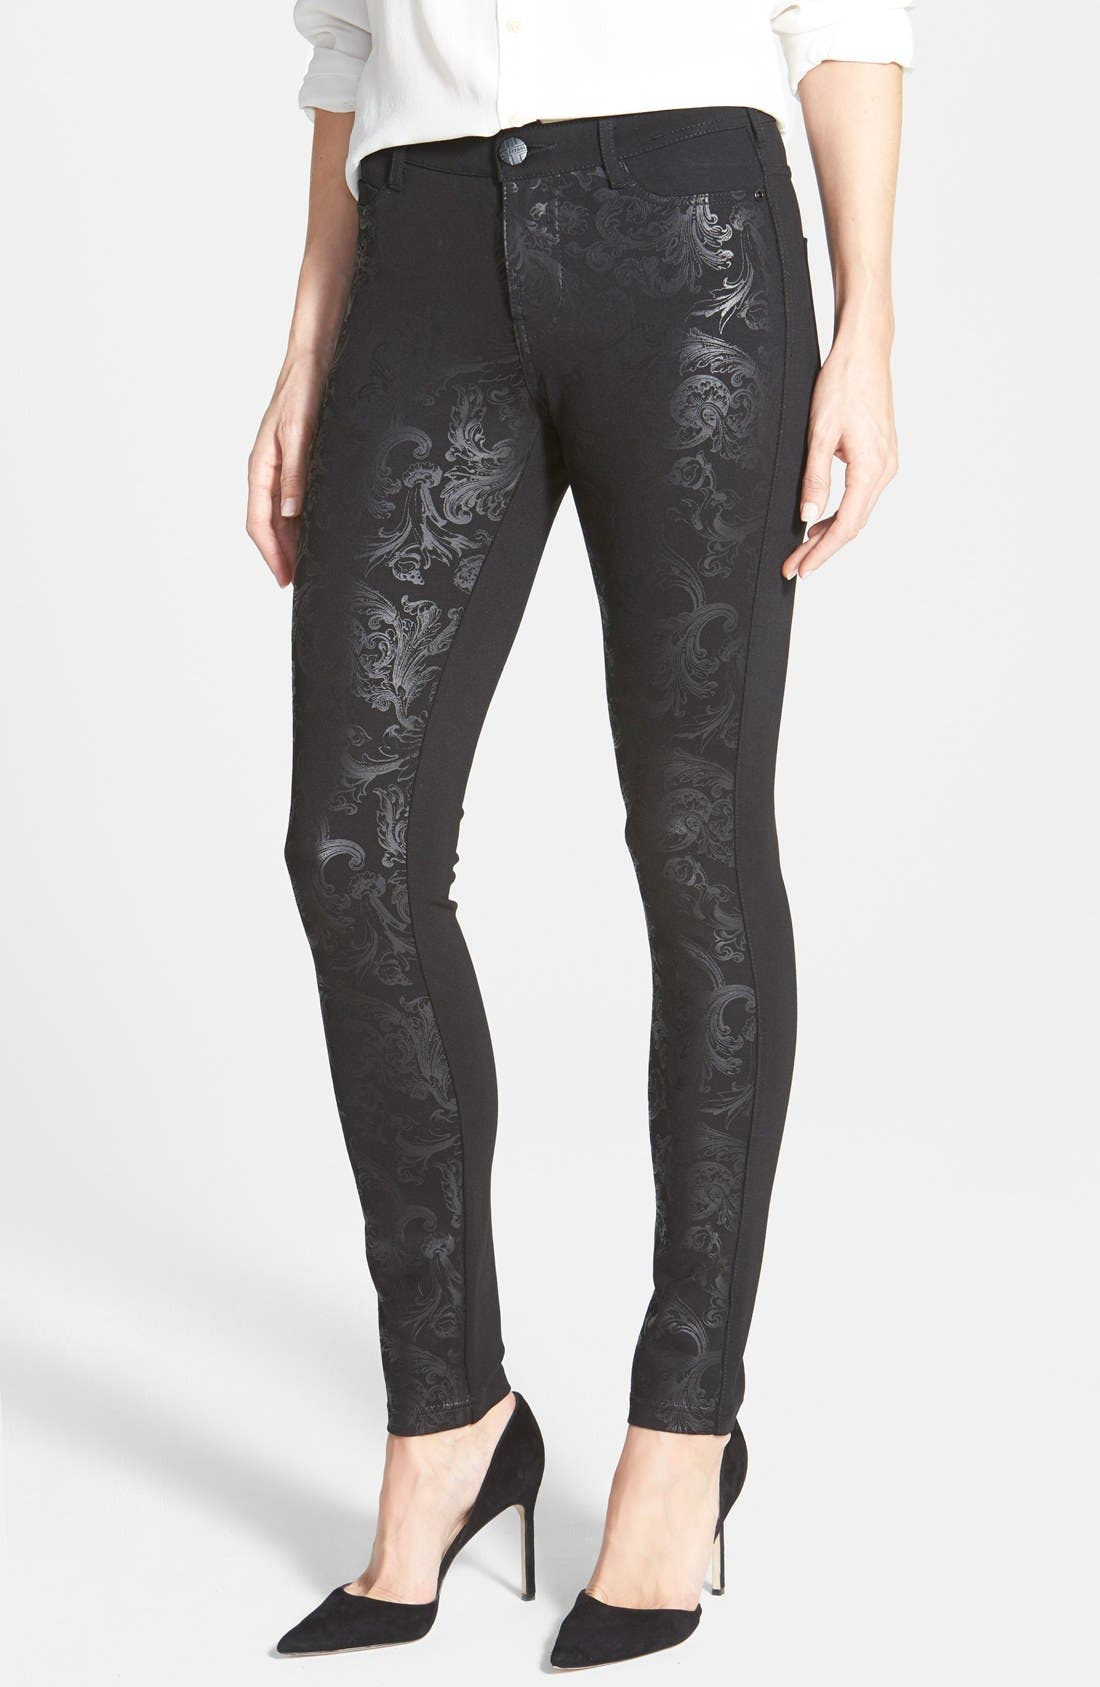 Alternate Image 1 Selected - Liverpool Jeans Company 'Madonna' Gloss Print Stretch Knit Skinny Pants